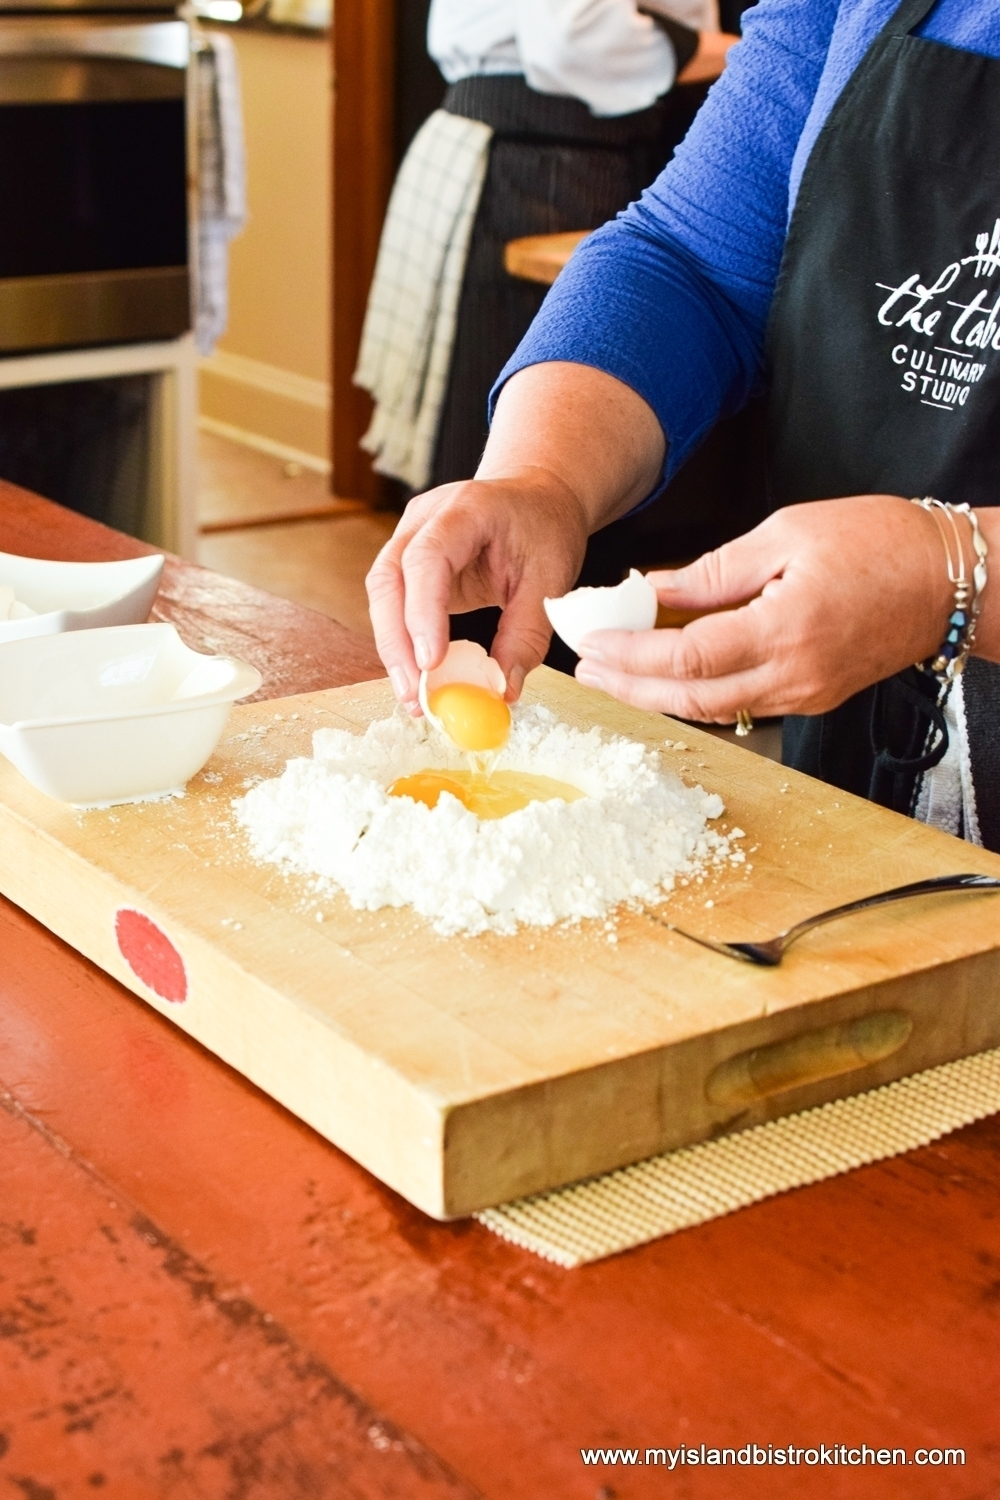 Making Gluten-Free Pasta at The Table Culinary Studio in New London, PEI